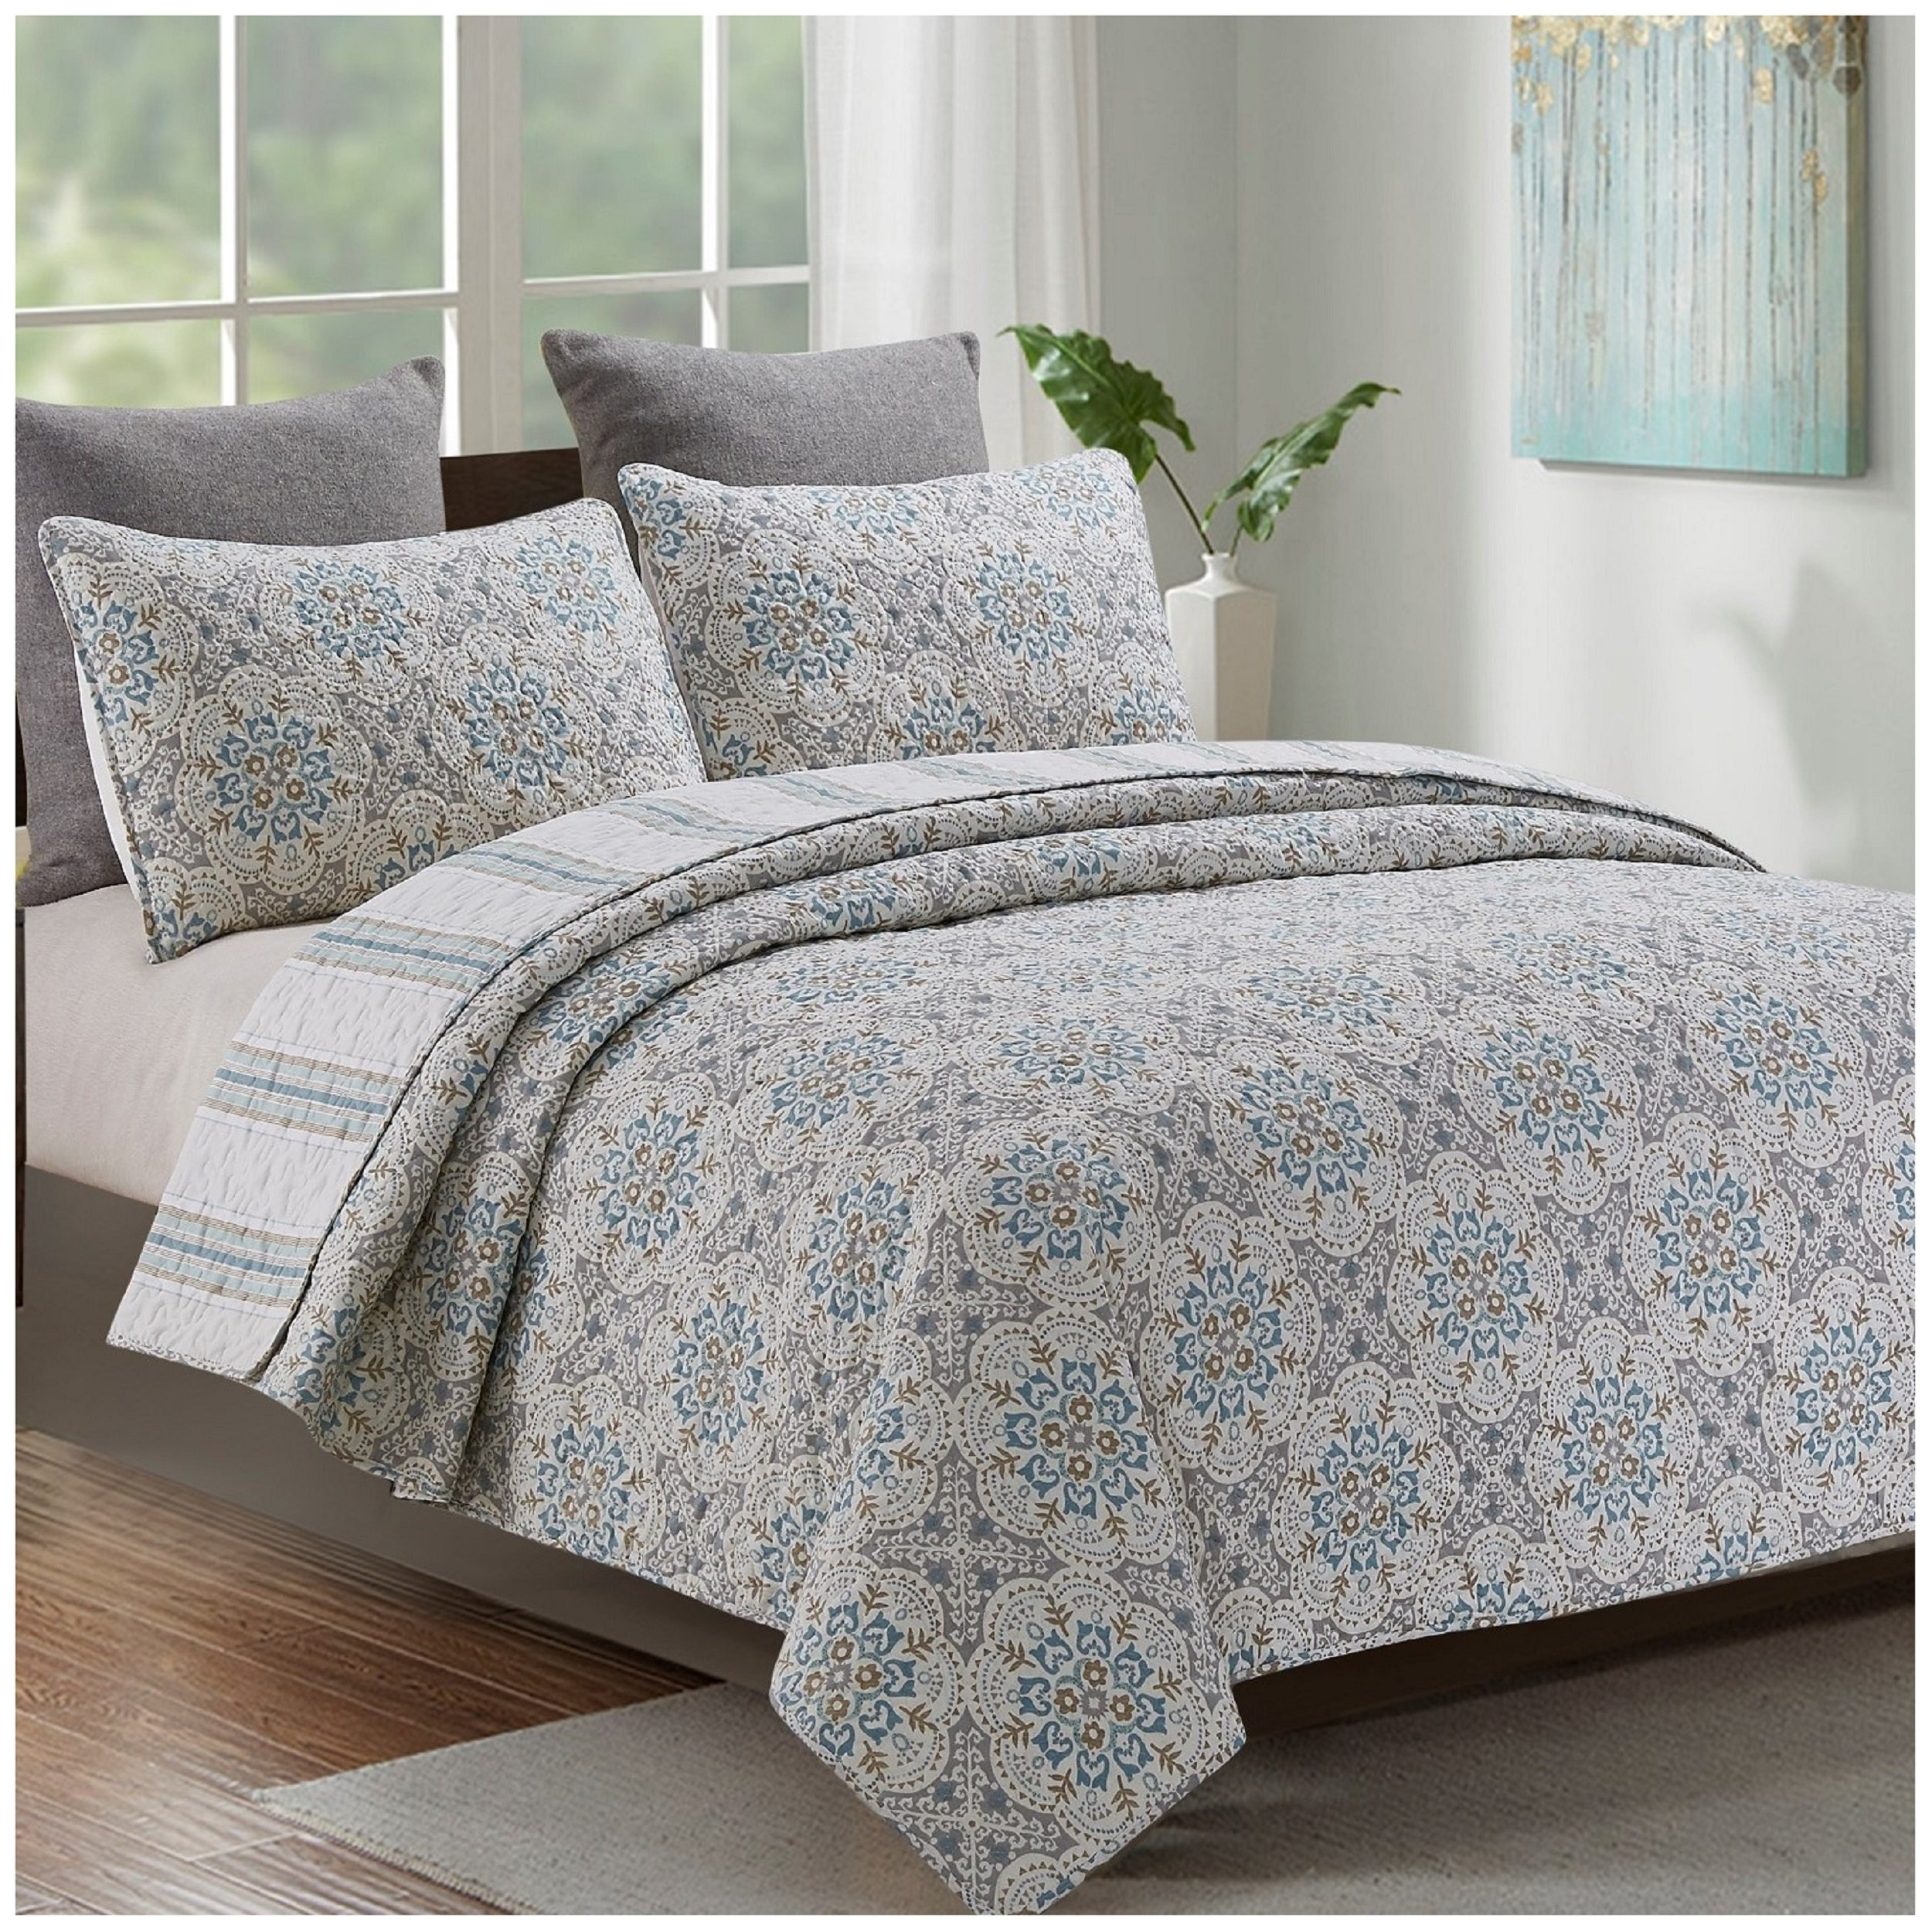 Hedaya Home Fashions Laurent Reversible Quilt Set, Contemporary Floral Medallion Pattern, 3-Piece Set with Quilt and Pillow Shams - Full/Queen, Laurent